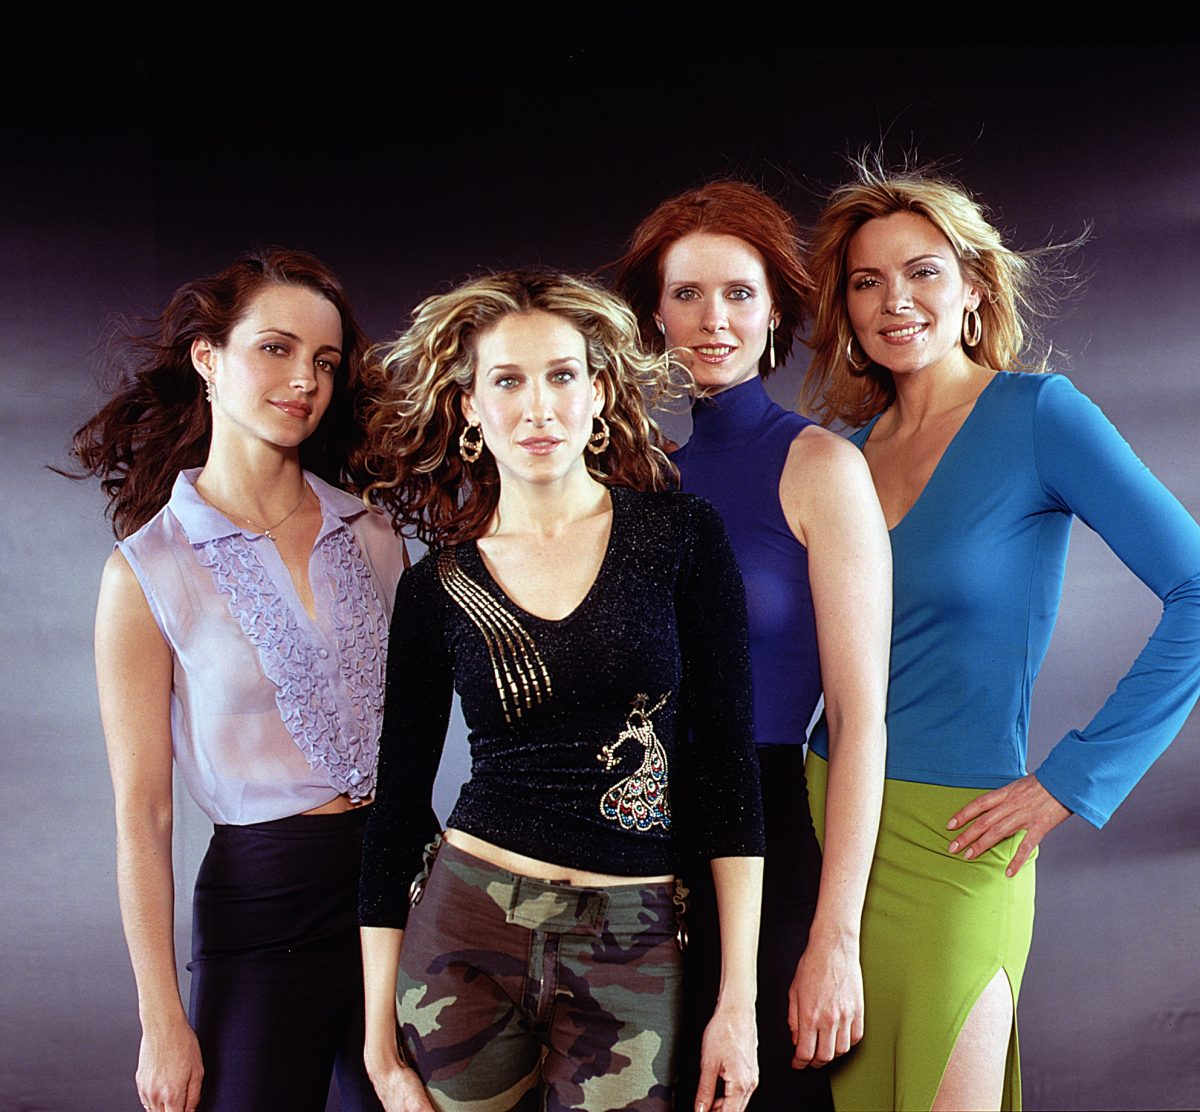 Kristin Davis, Sarah Jessica Parker, Cynthia Nixon and Kim Cattrall appear in promotional material for 'Sex and the City'